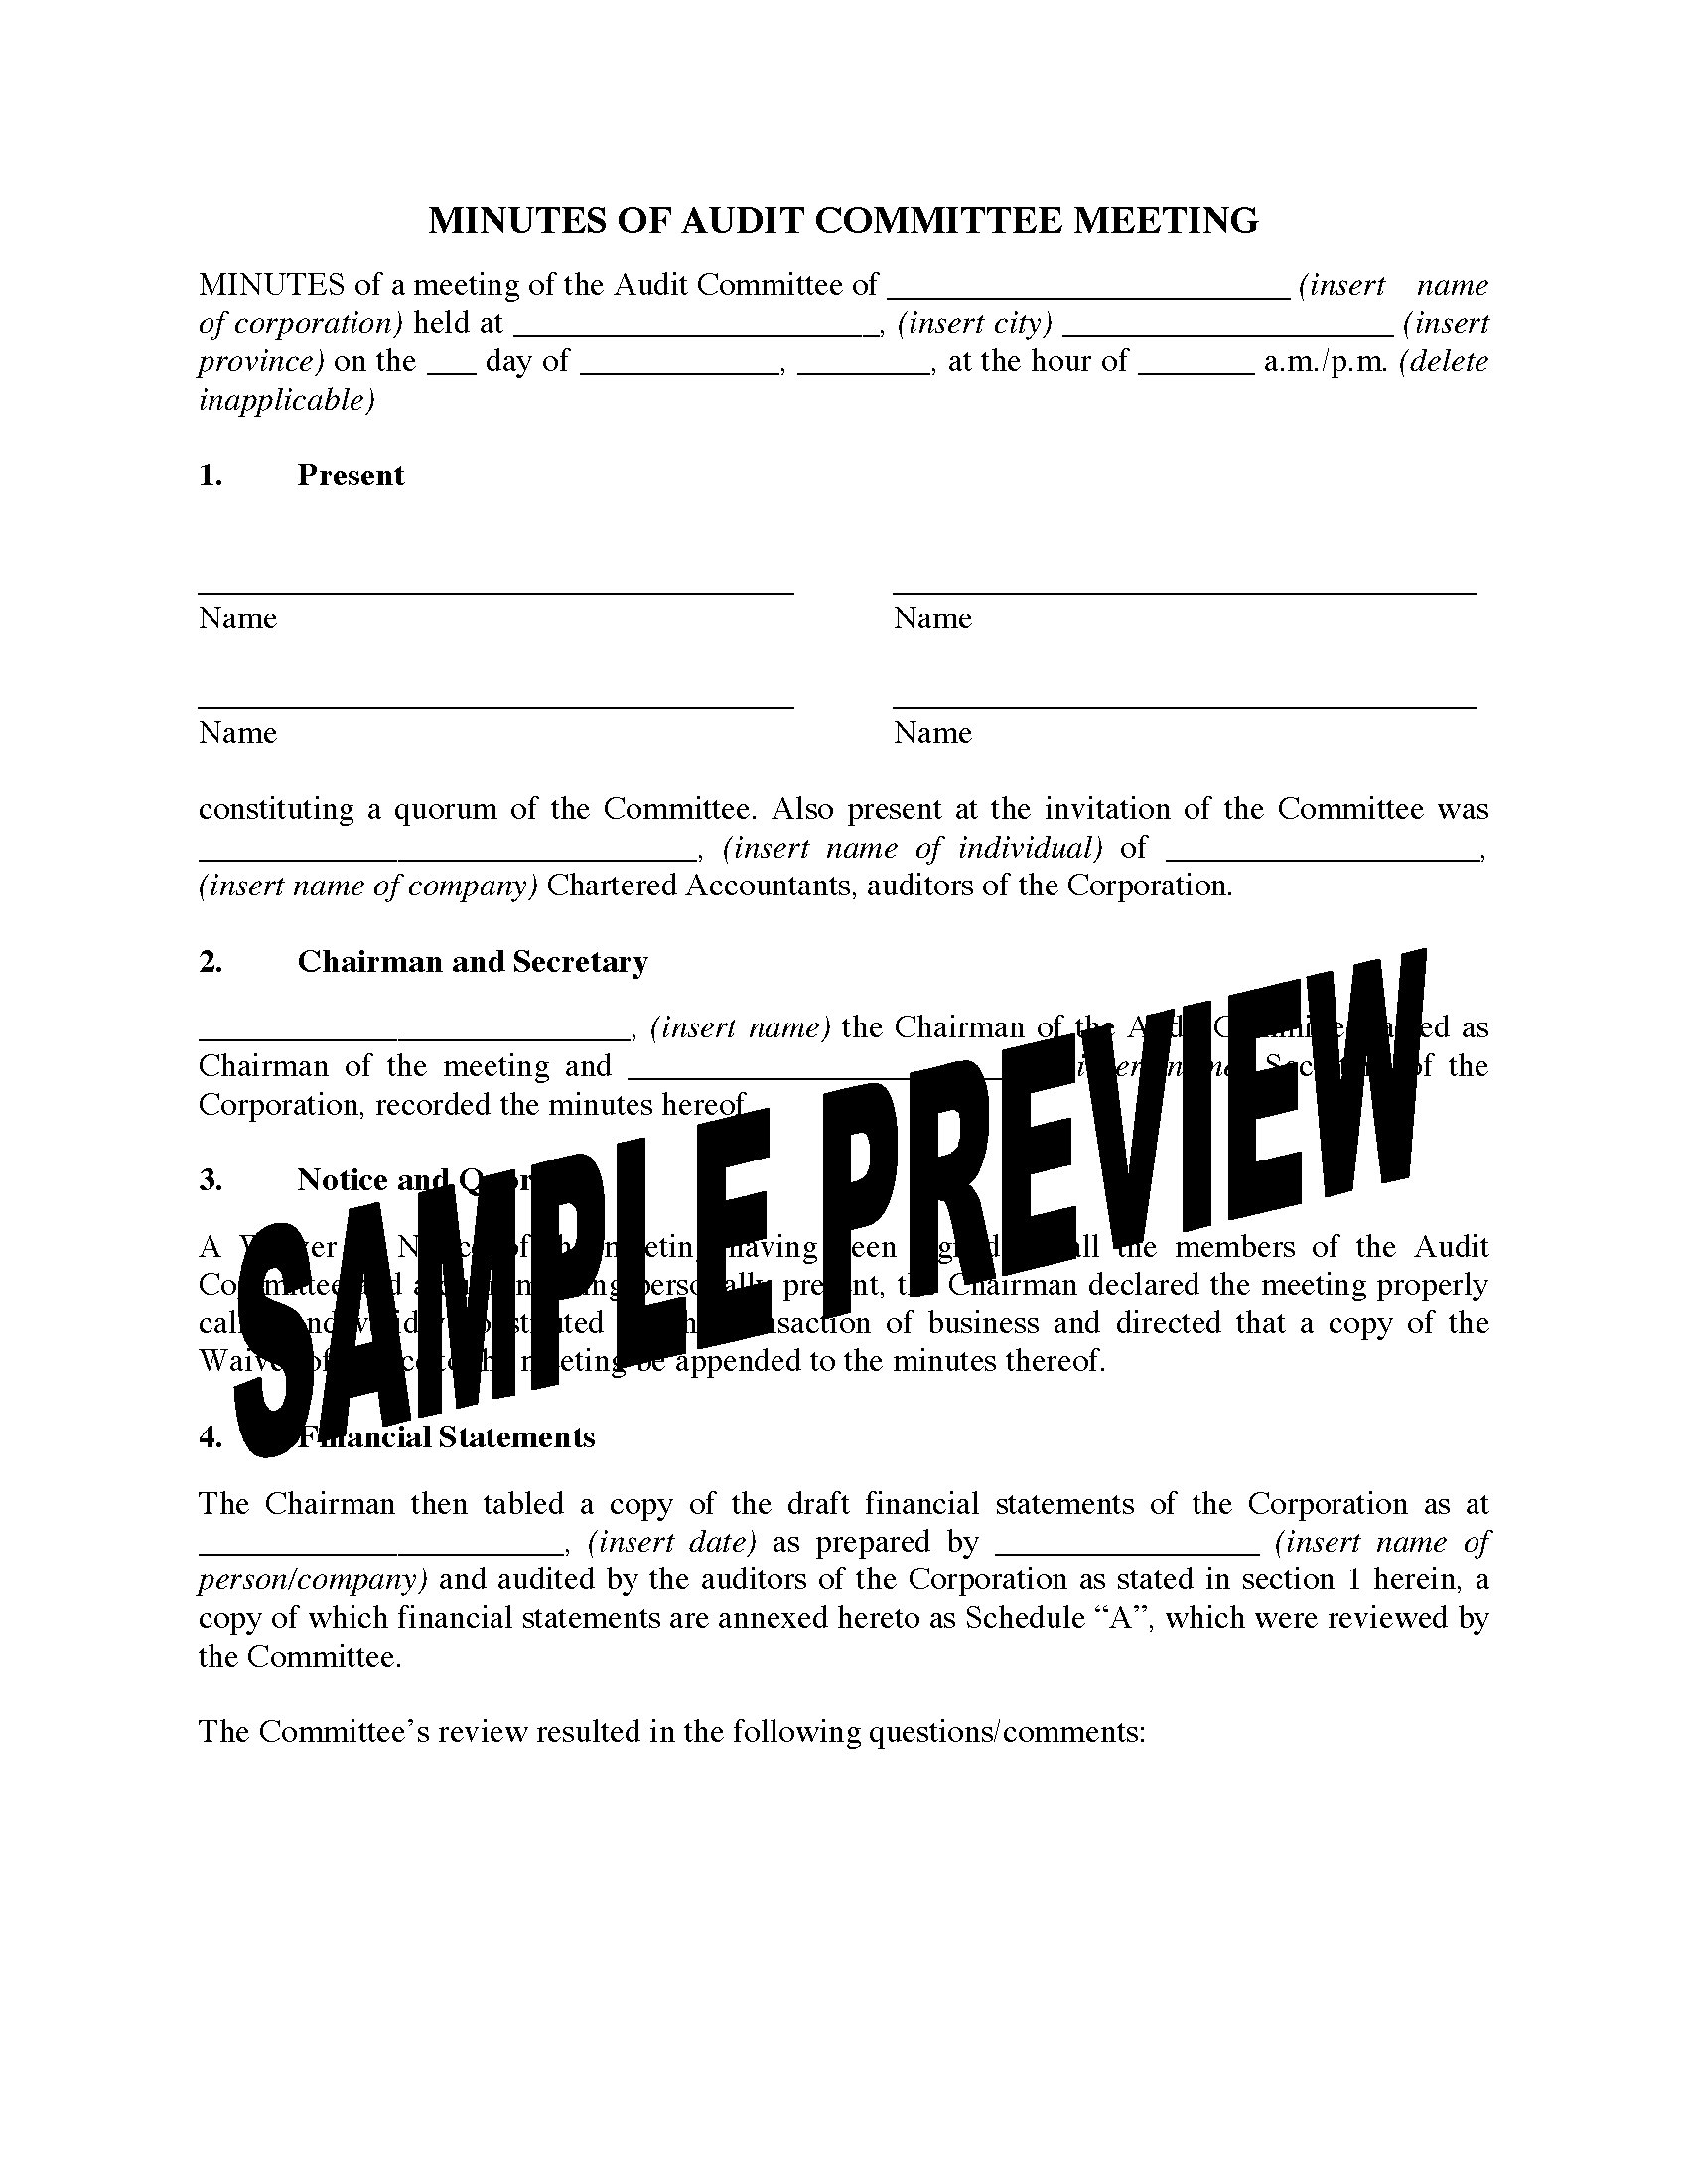 canada minutes of audit committee meeting legal forms